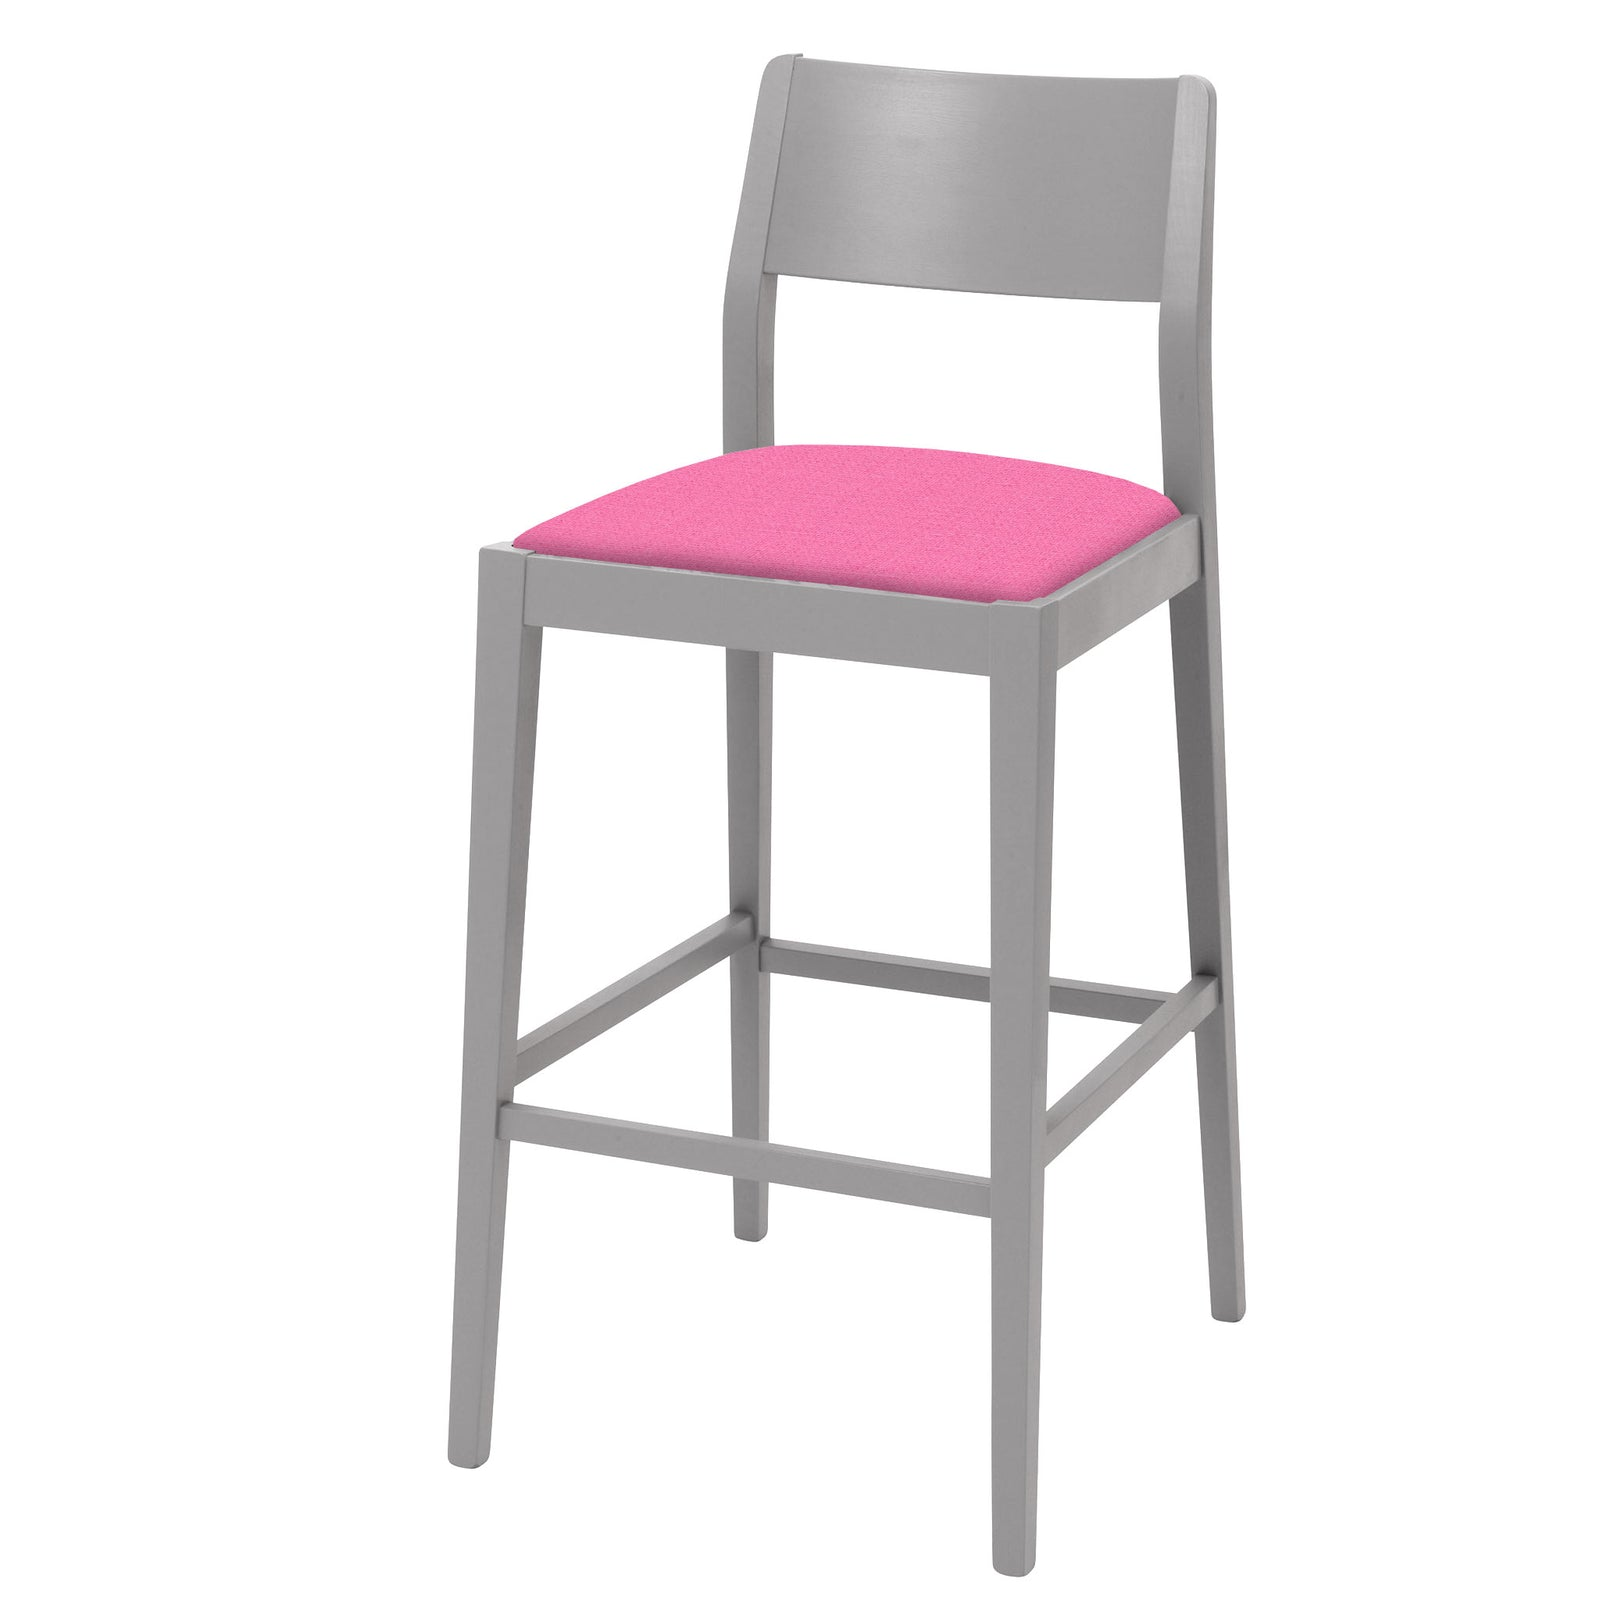 Shaker style bar stool individually upholstered in your chosen colourway